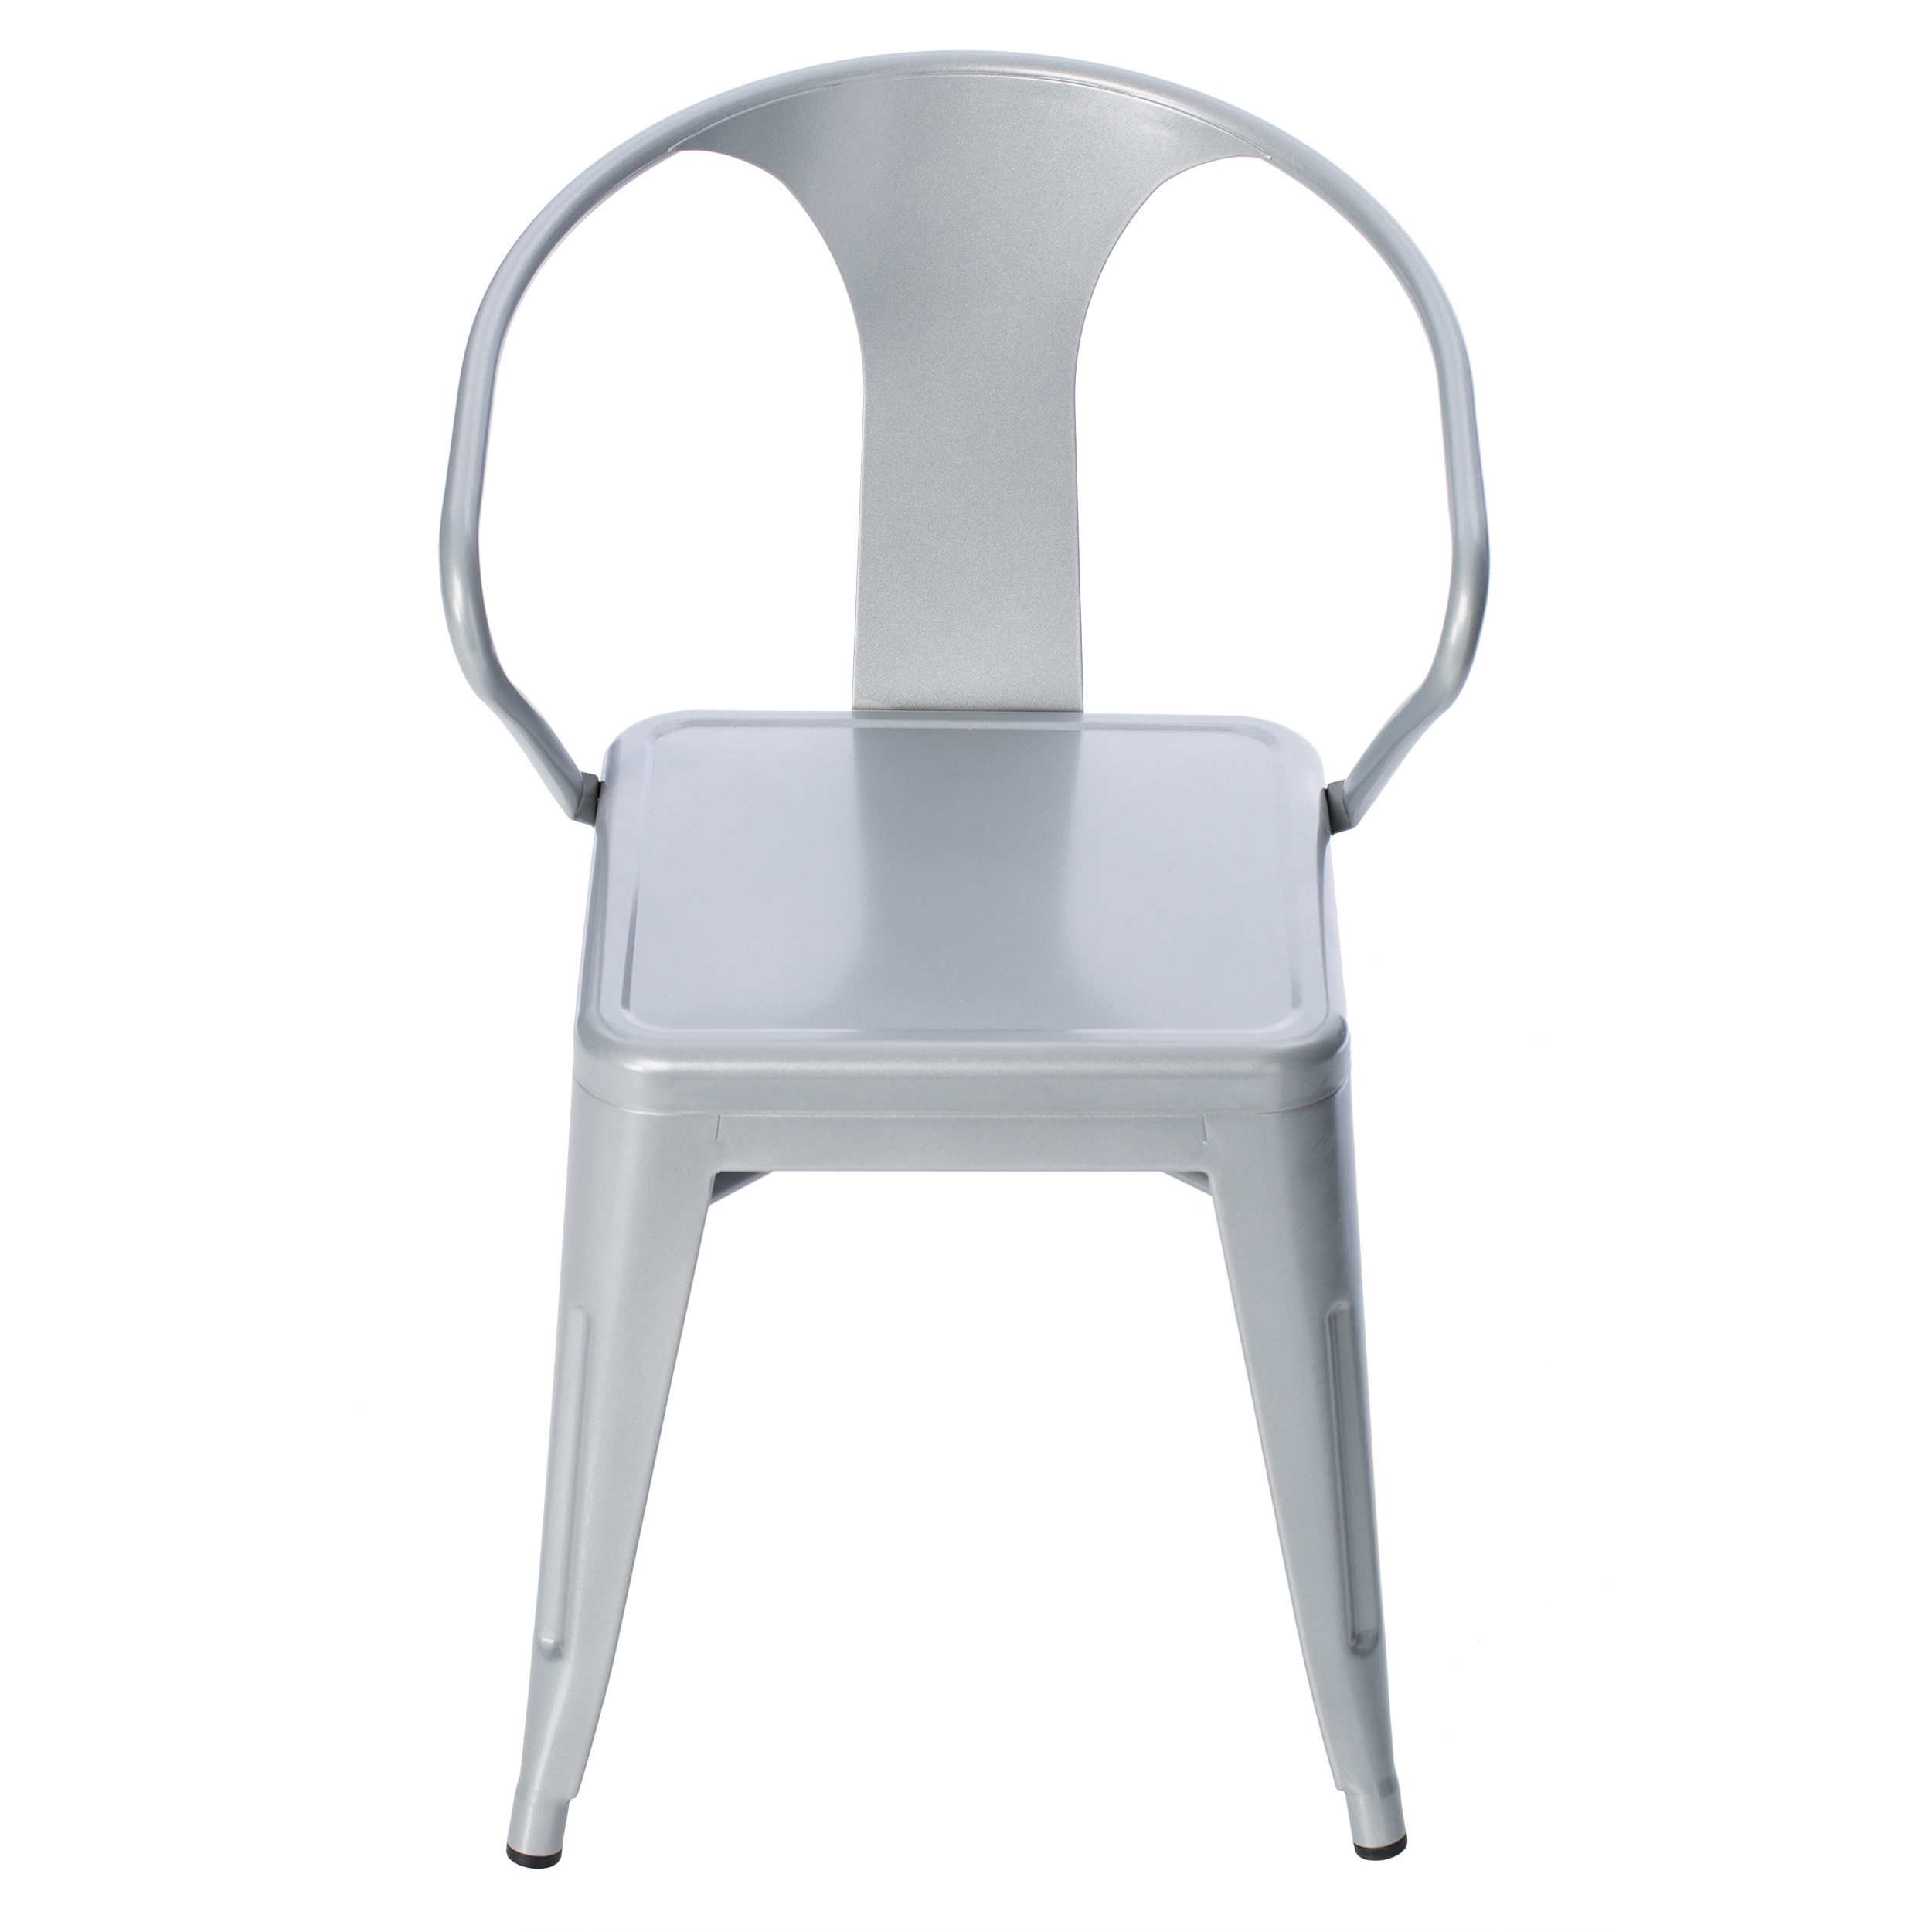 Carbon Loft Silver Tabouret Stacking Chairs (Set Of 4)   Free Shipping  Today   Overstock.com   12950045